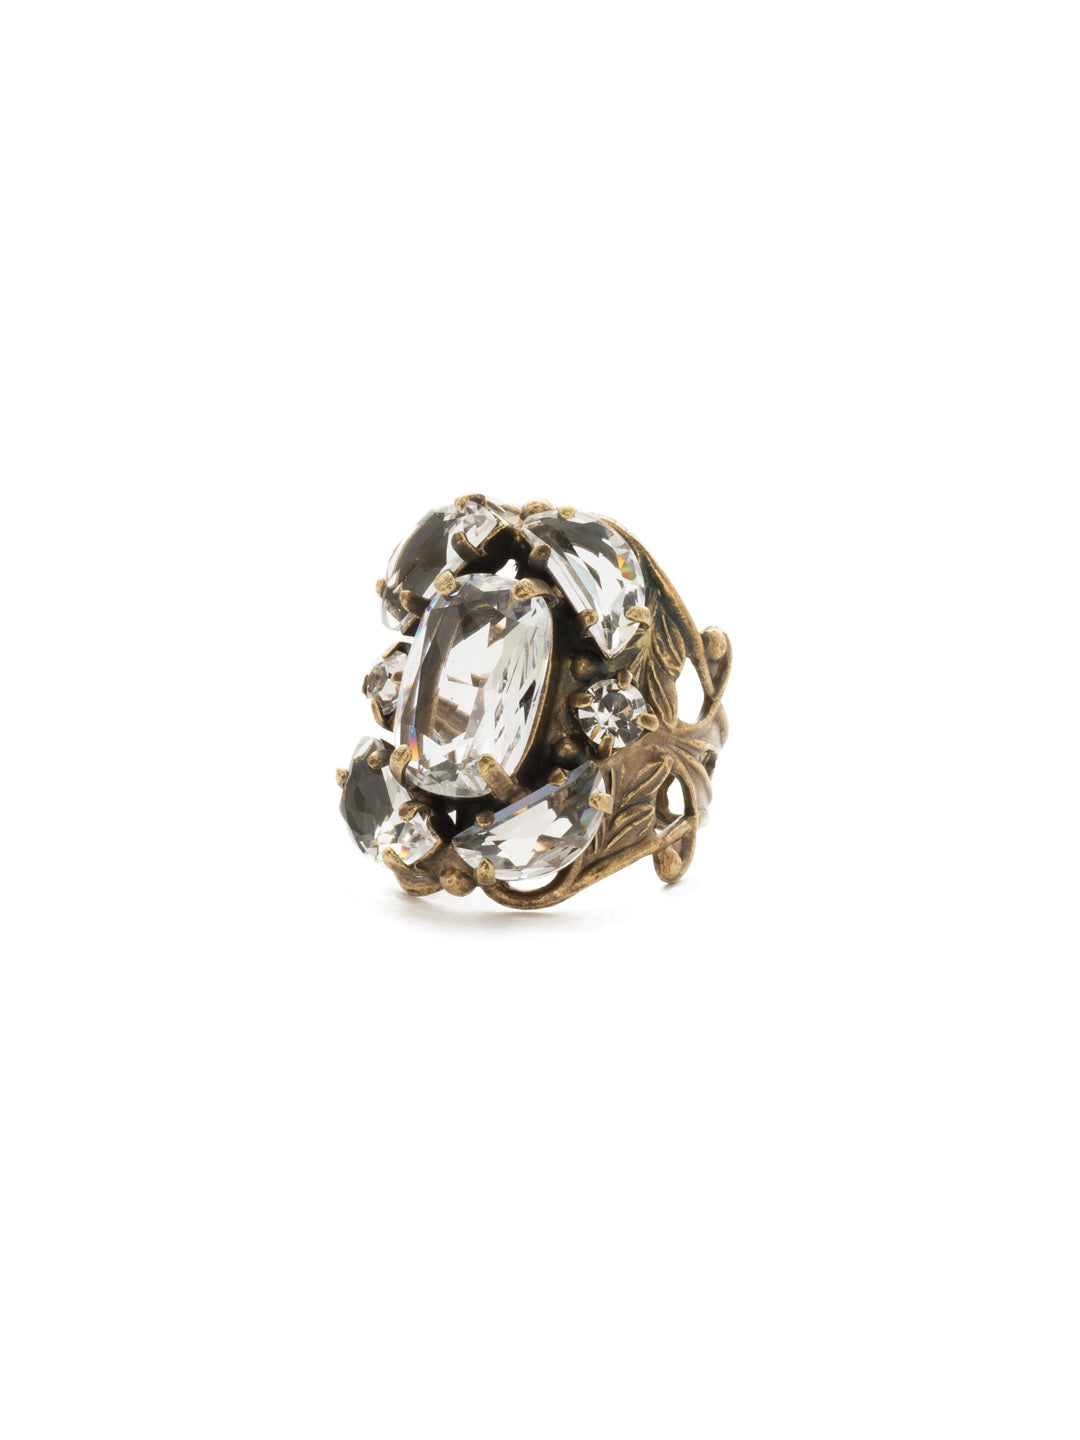 Cutting Edge Statement Ring - RDK35AGCRY